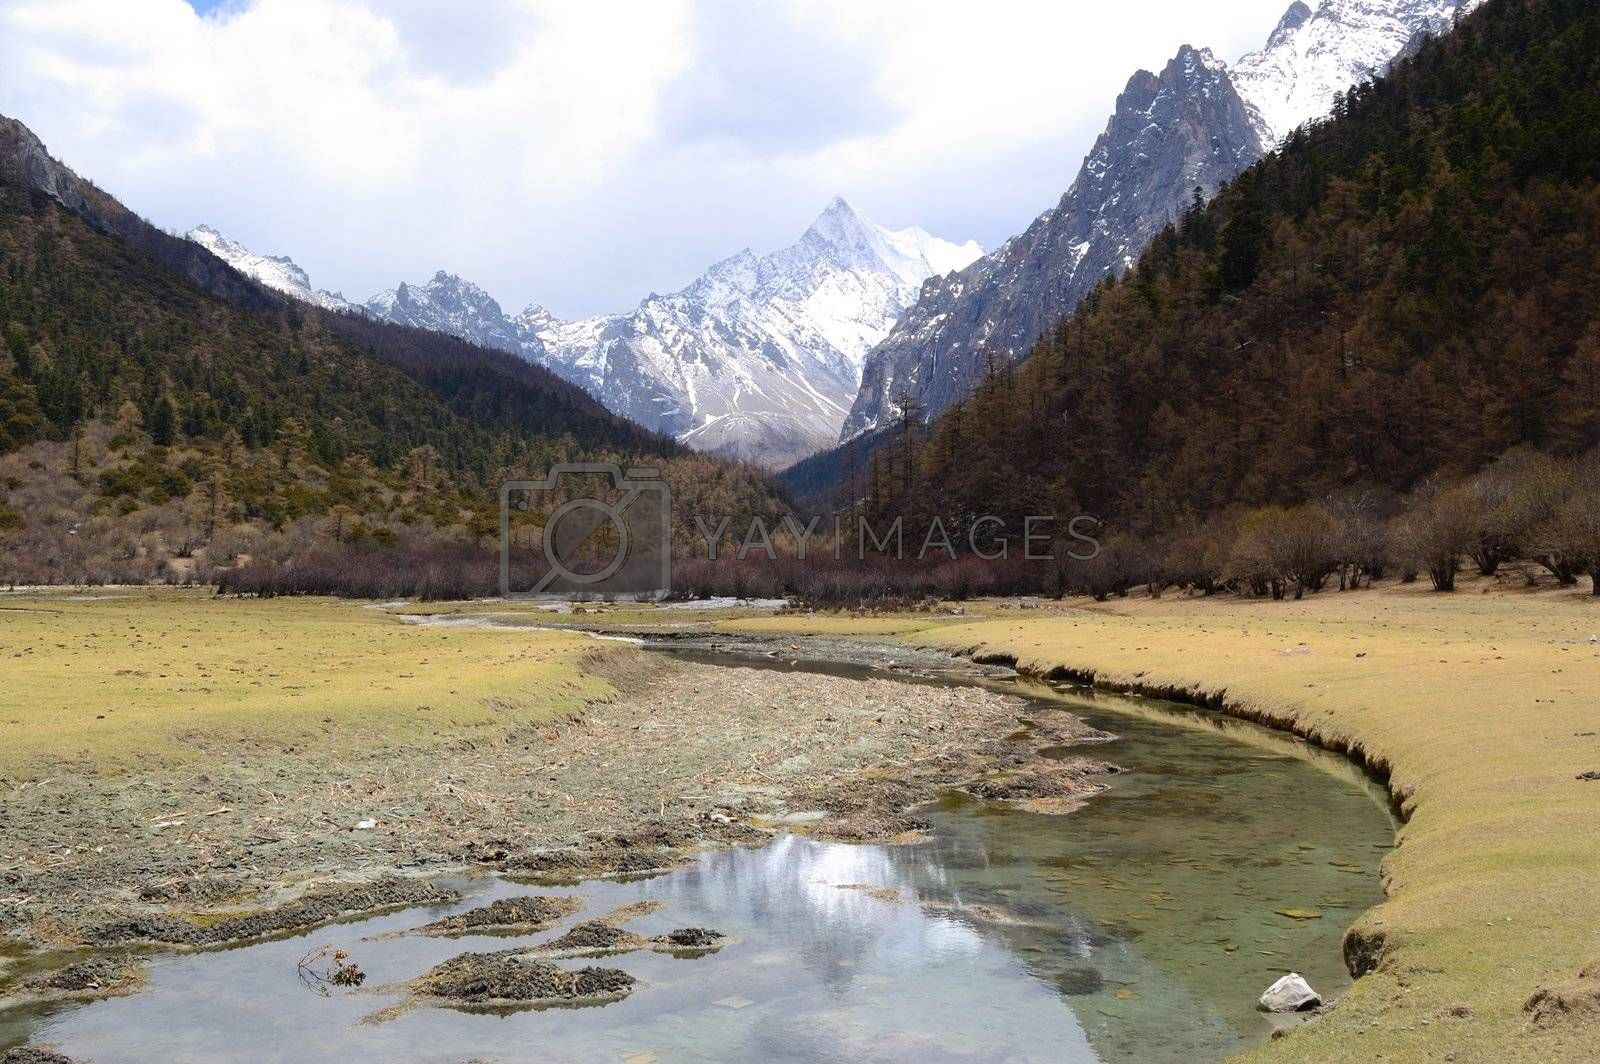 Landscapes of Snow mountains in Daocheng,Sichuan Province, China